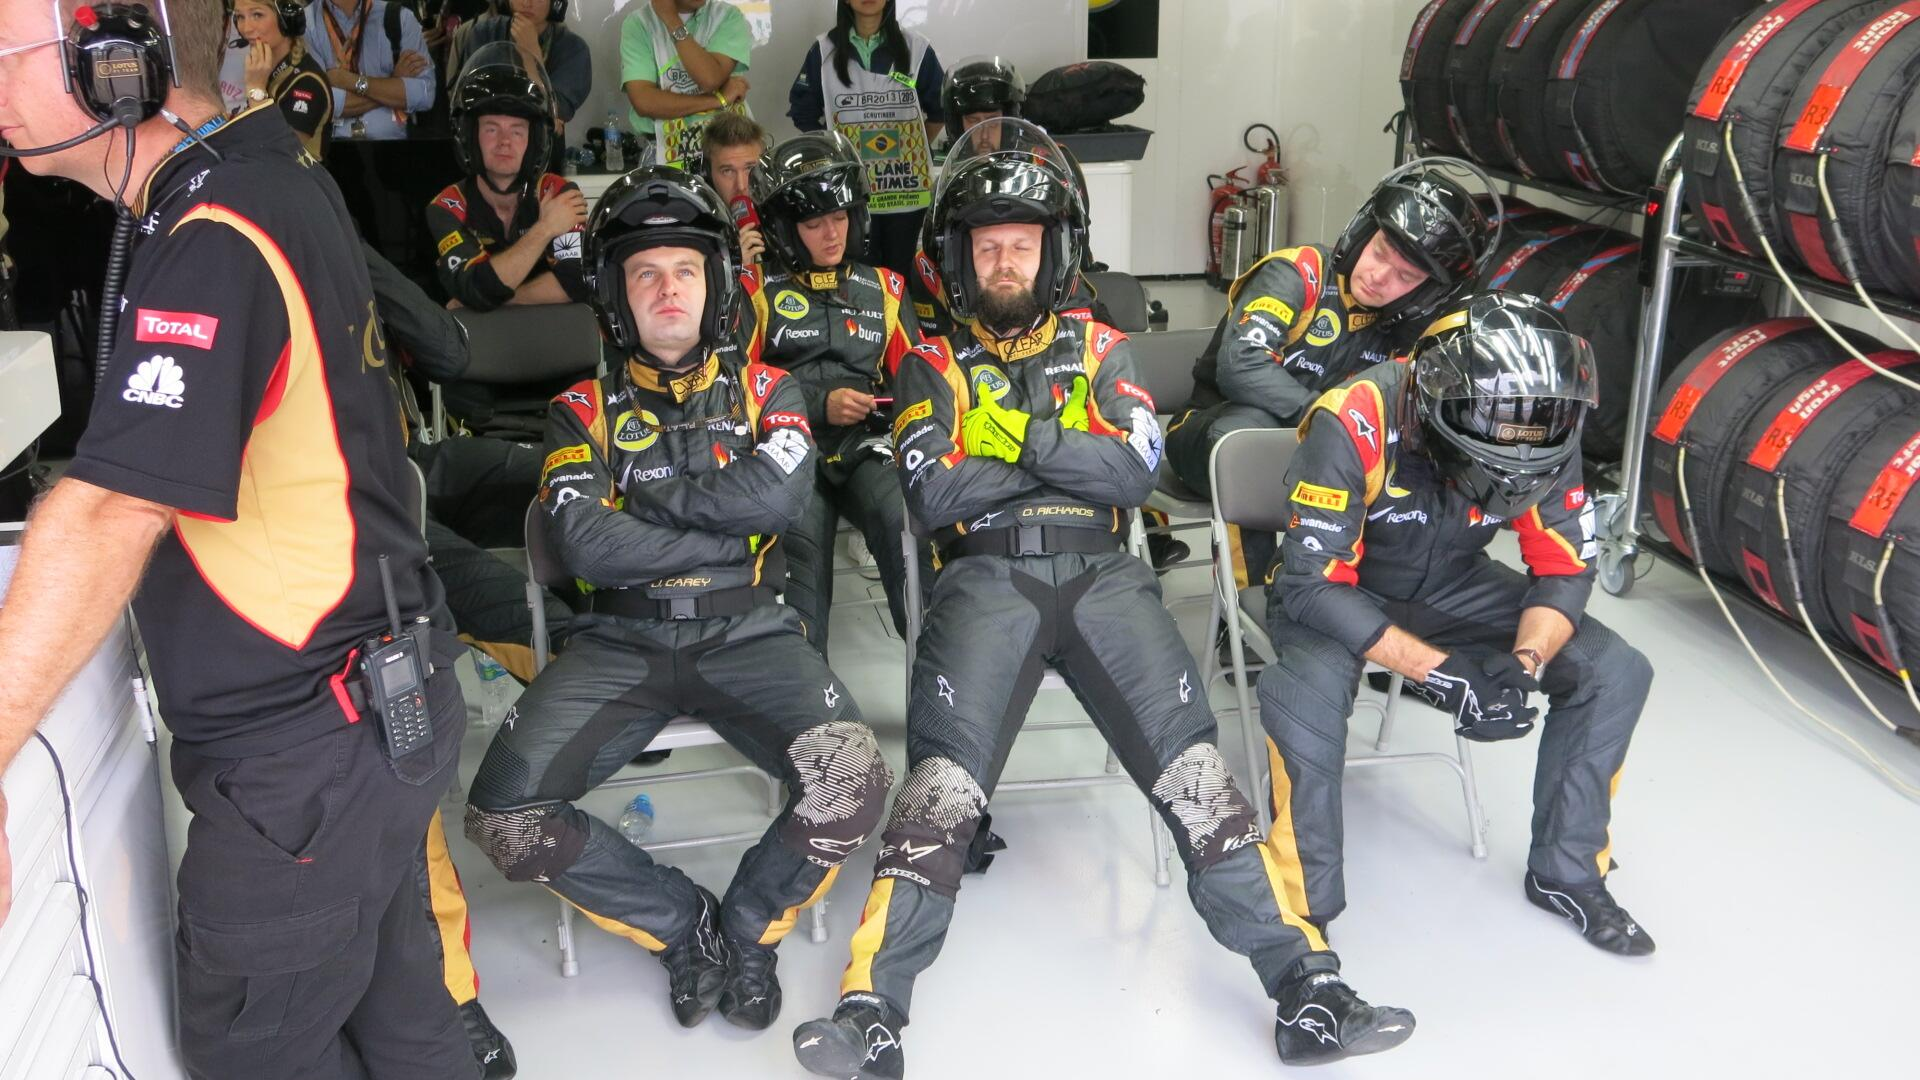 RT @Lotus_F1Team: Here was @H_Kovalainen 's crew shortly before that pit stop http://t.co/ygQZsQ38Dh